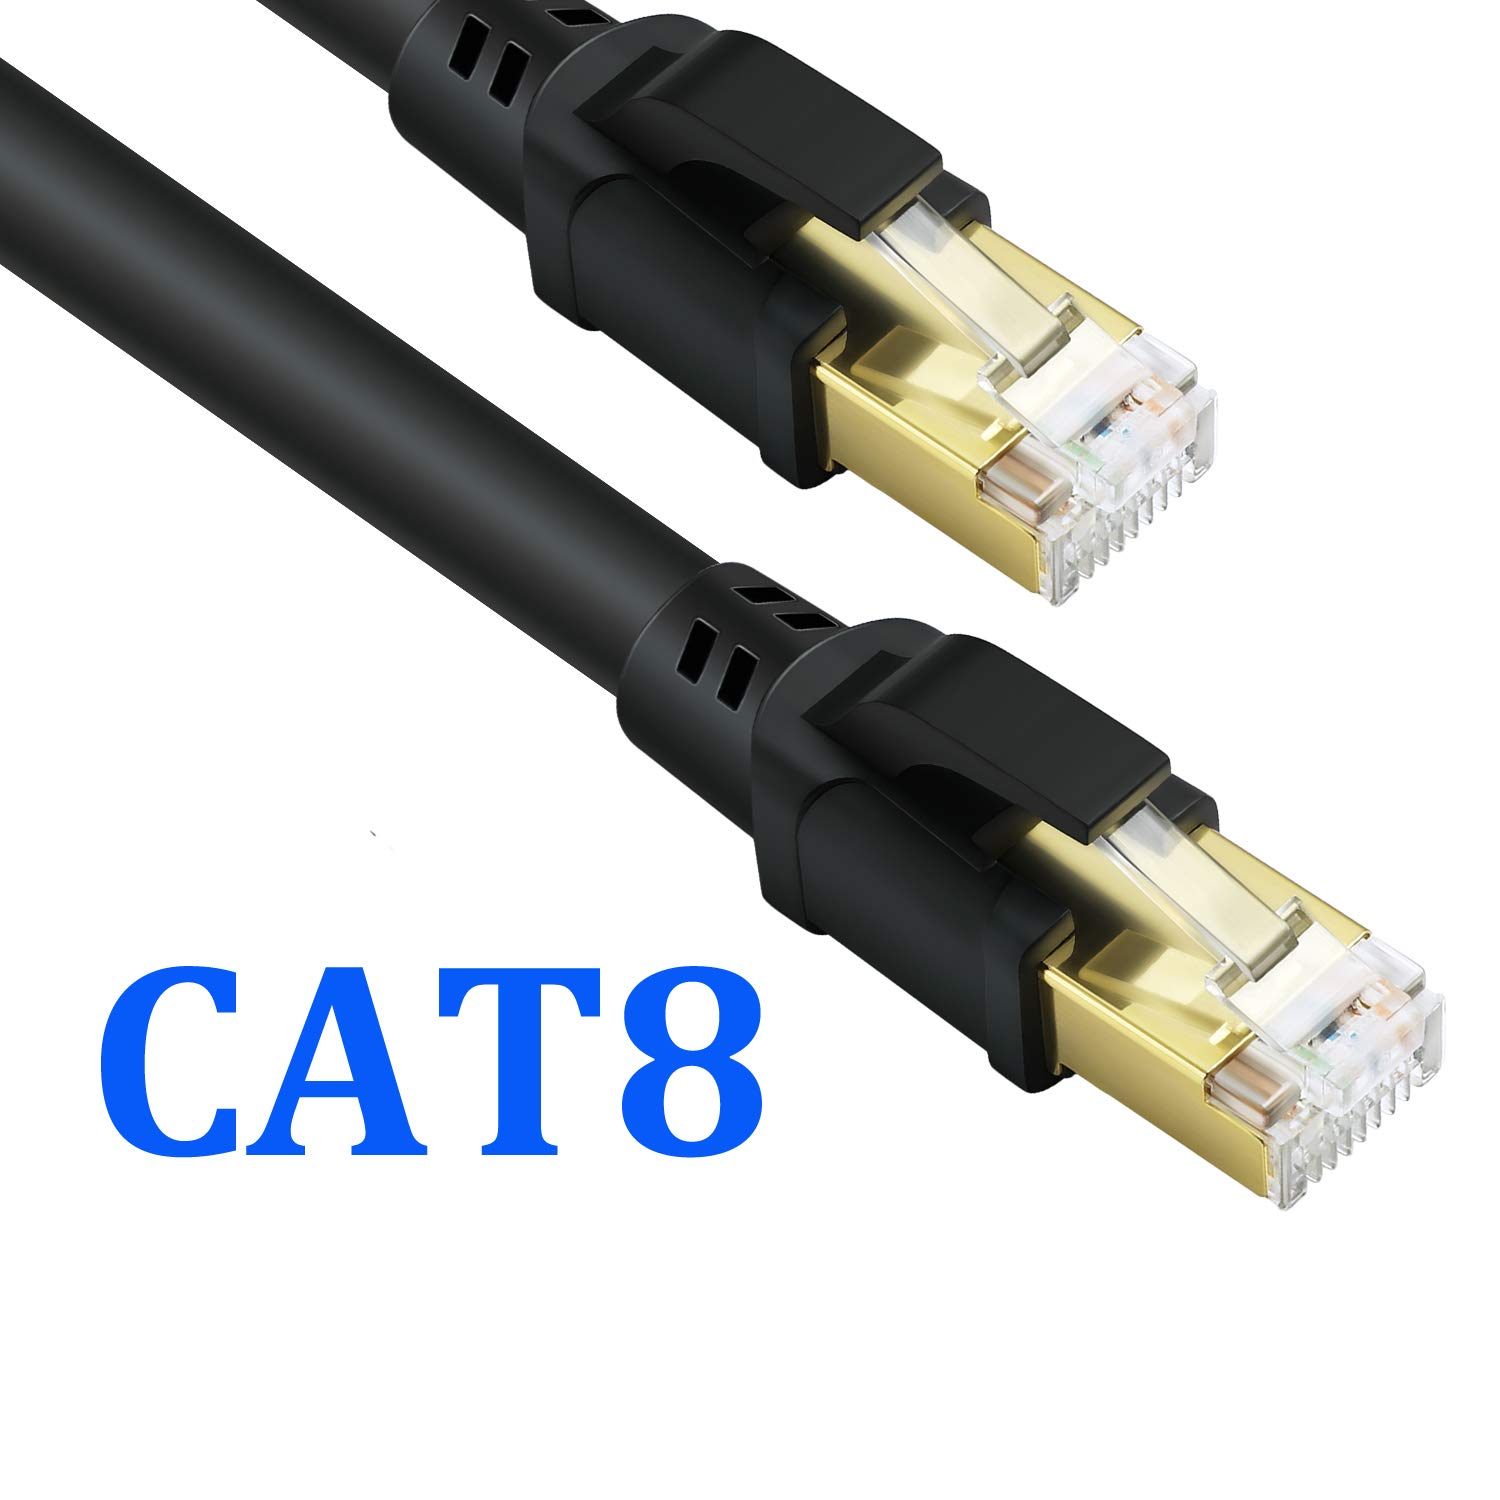 LanYunUmi CAT8 Ethernet Cable,Professional Network Patch Cable 40Gbps 2000Mhz S/FTP LAN Wires, High Speed Internet Cable Cord with RJ45 Gold (CAT8 (49FT/15M)) by LanYunUmi